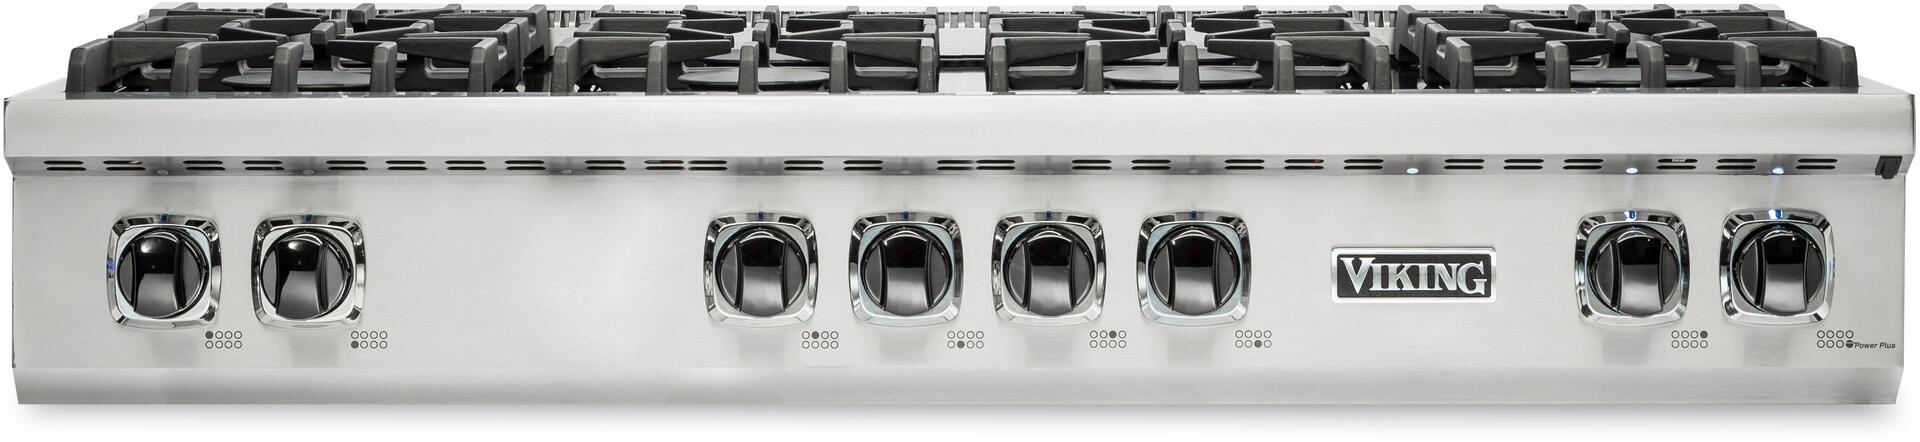 Viking 8 Burner Gas Range Top w/ Downdraft & Blower